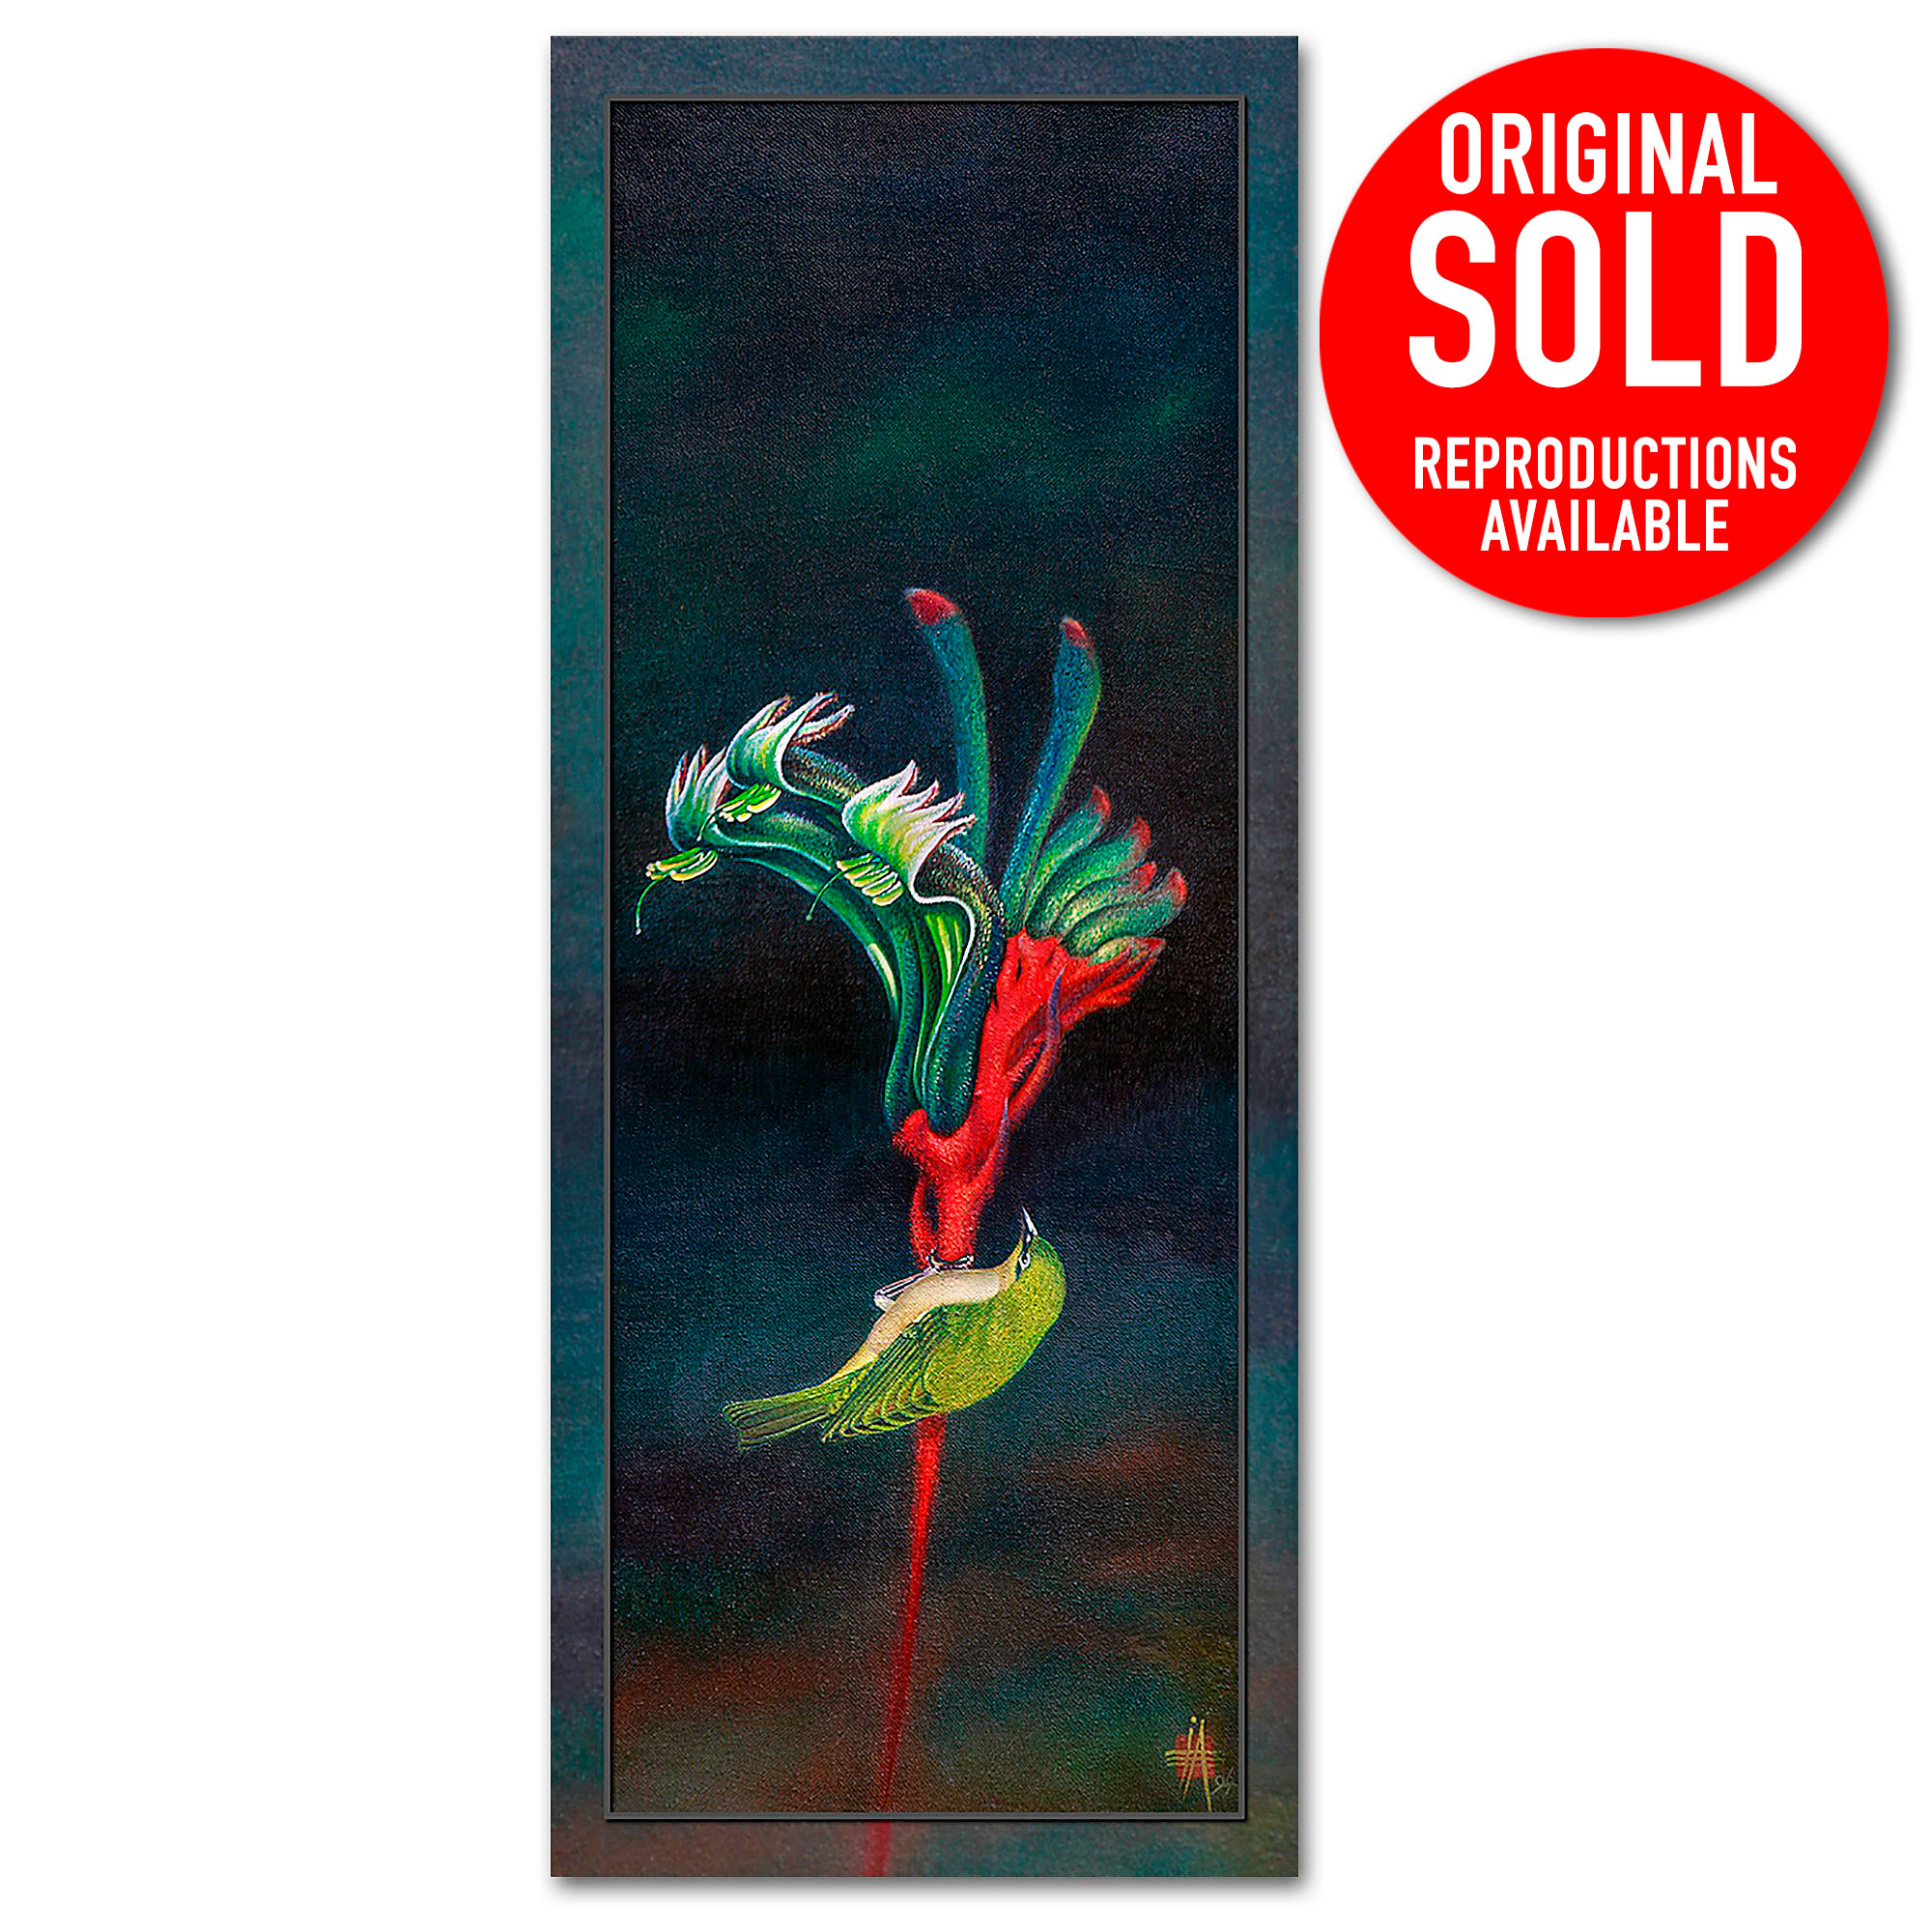 kangaroo paw silvereye painting in oils Flora and Fauna by Ian Anderson Fine Art.